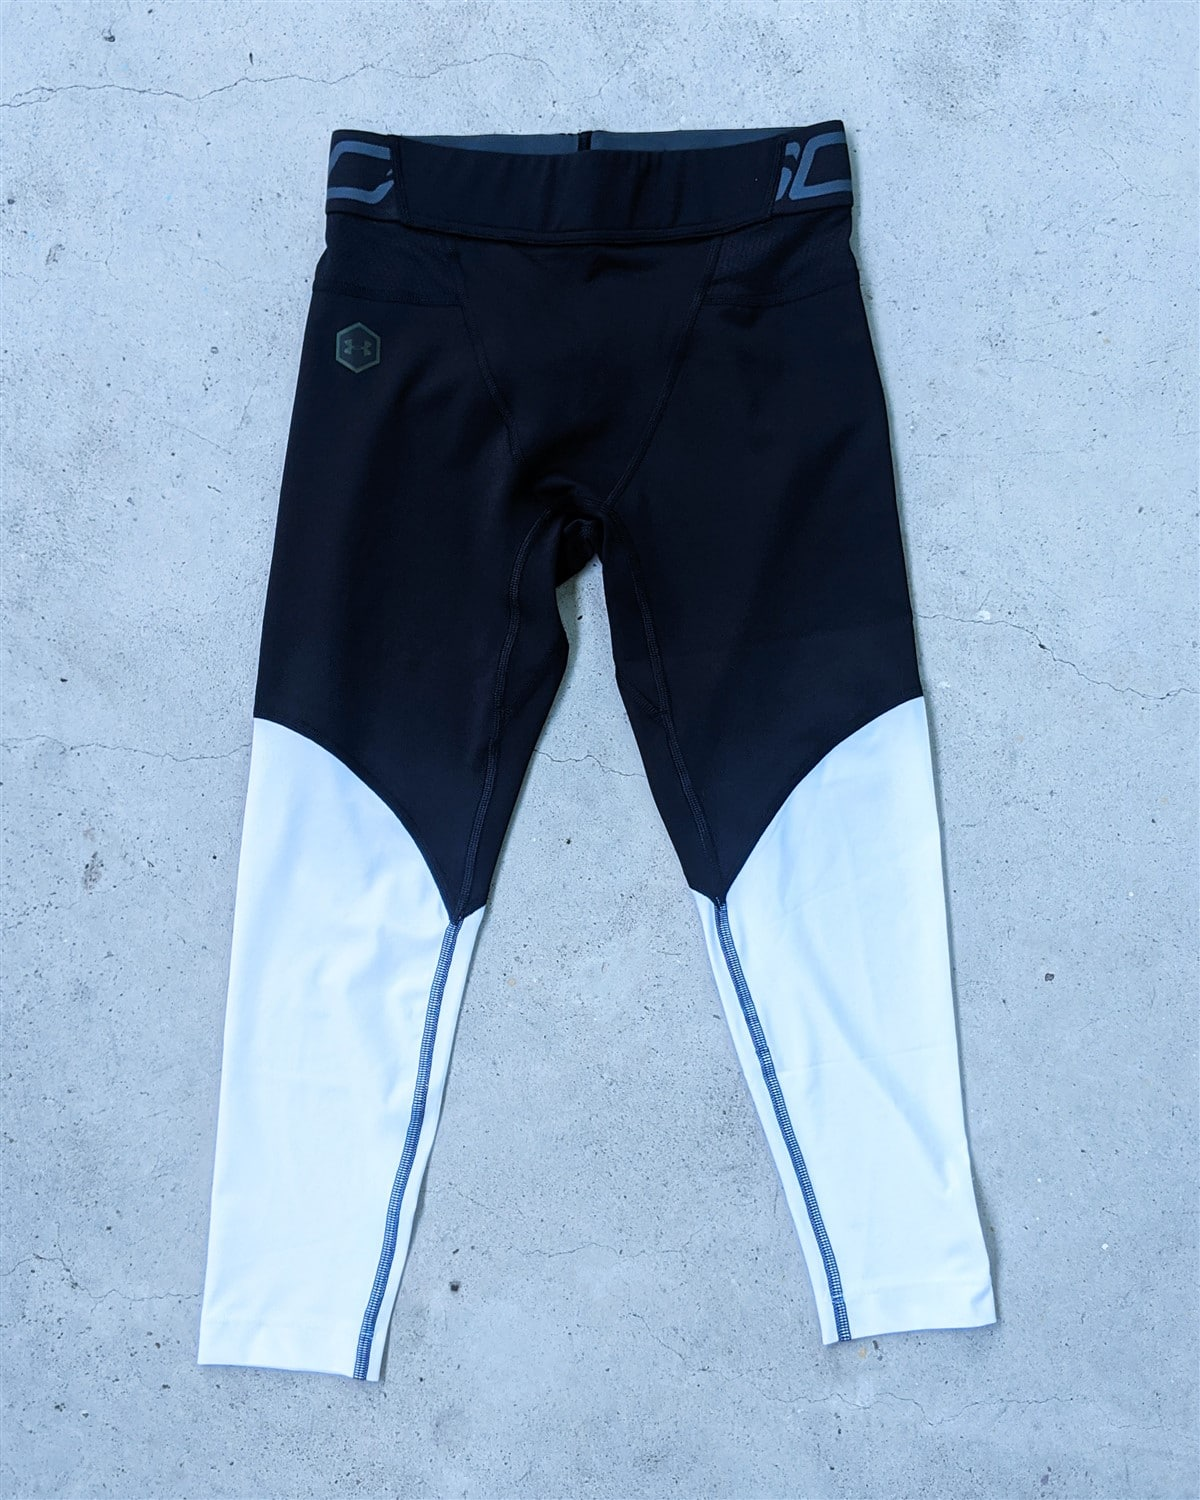 Under Armour RUSH Compression leggings steph curry edition